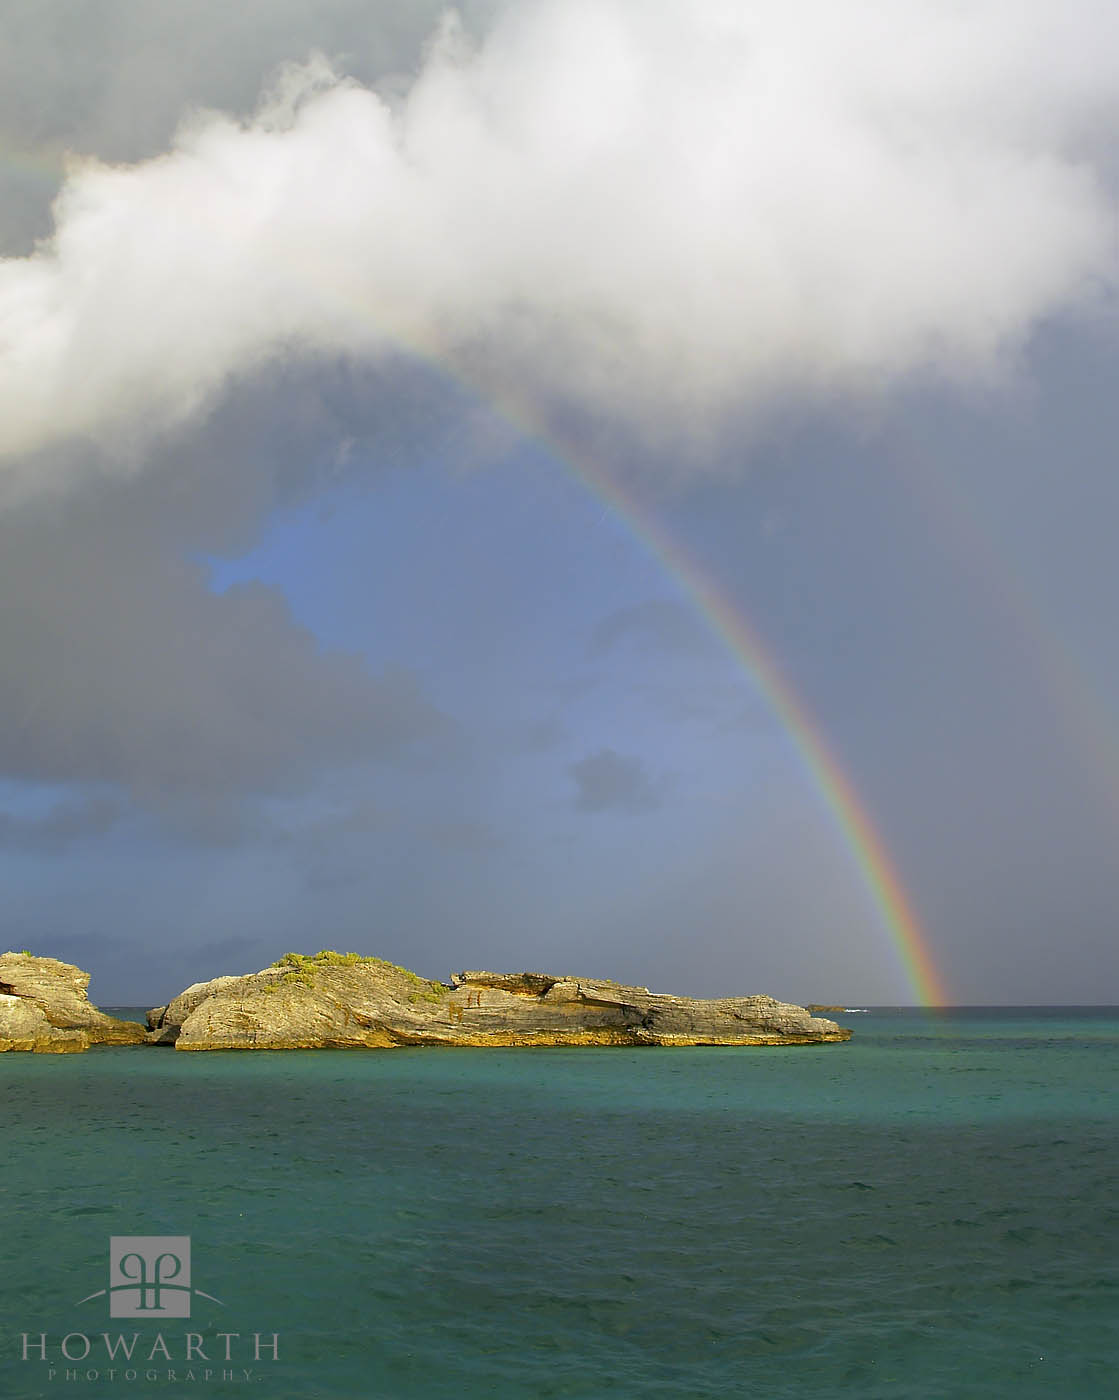 rainbow, pear, rocks, coopers, island, rain, storm, photo